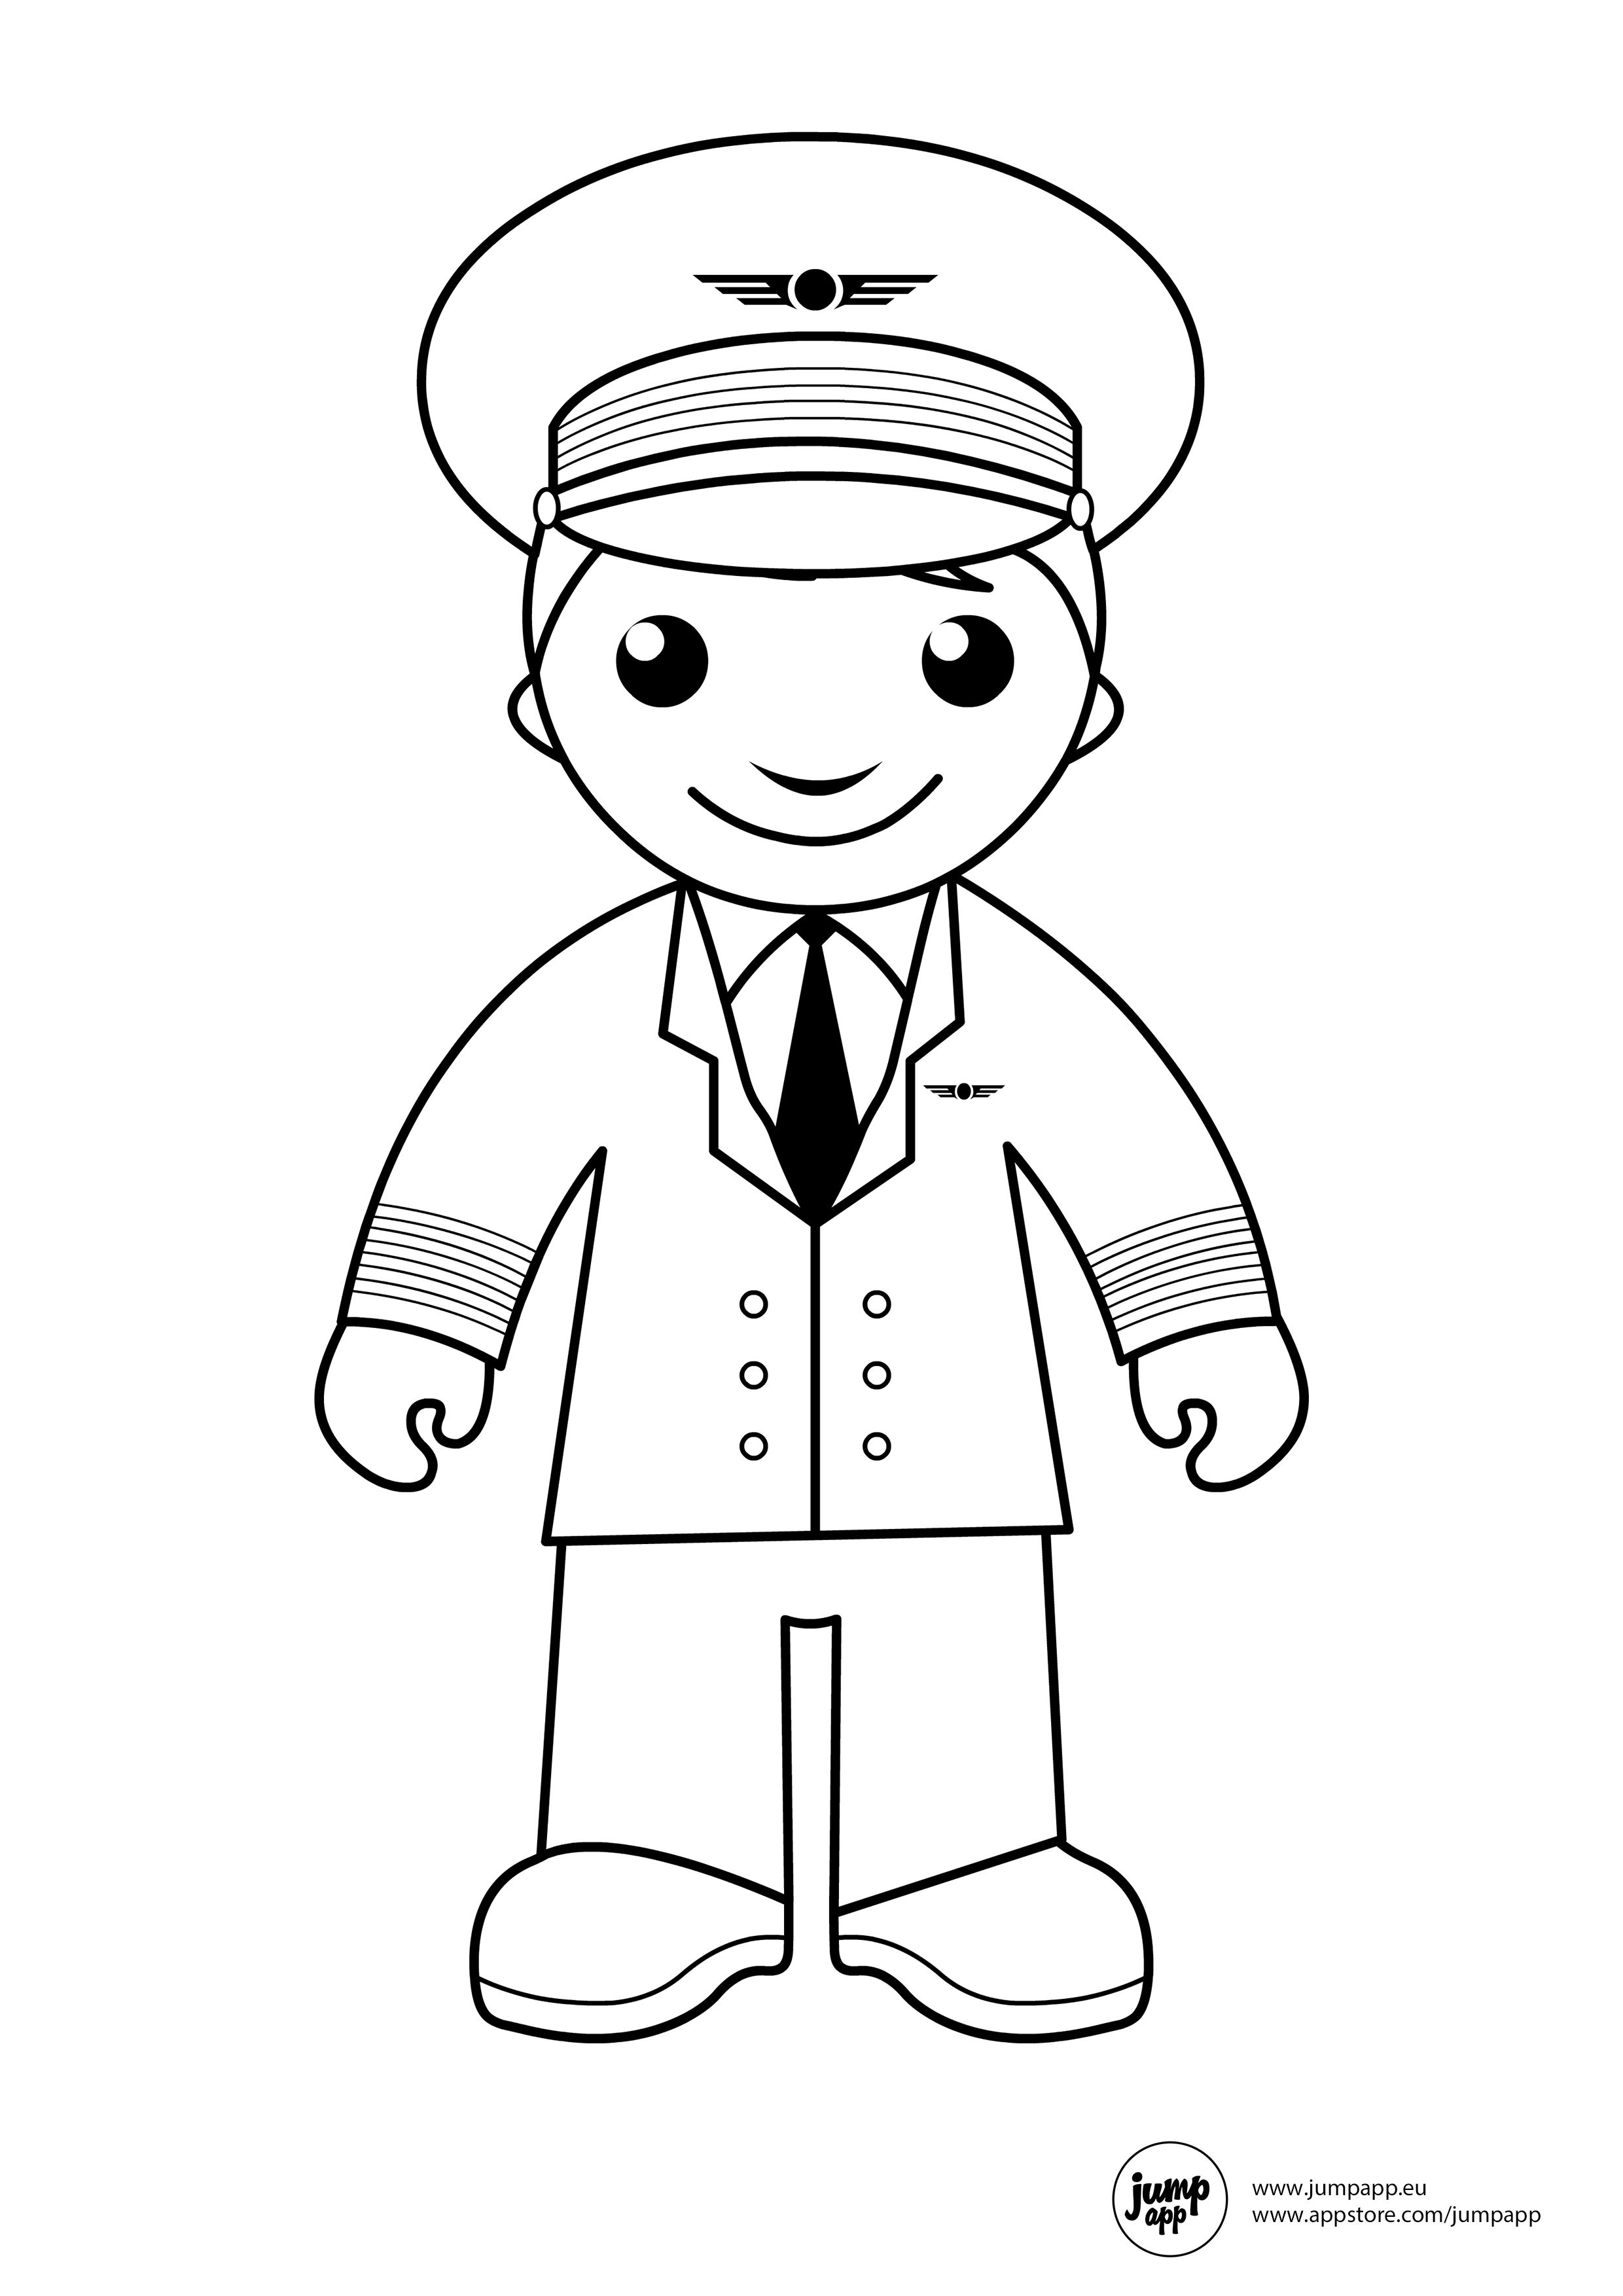 pilot coloring pages - photo#5